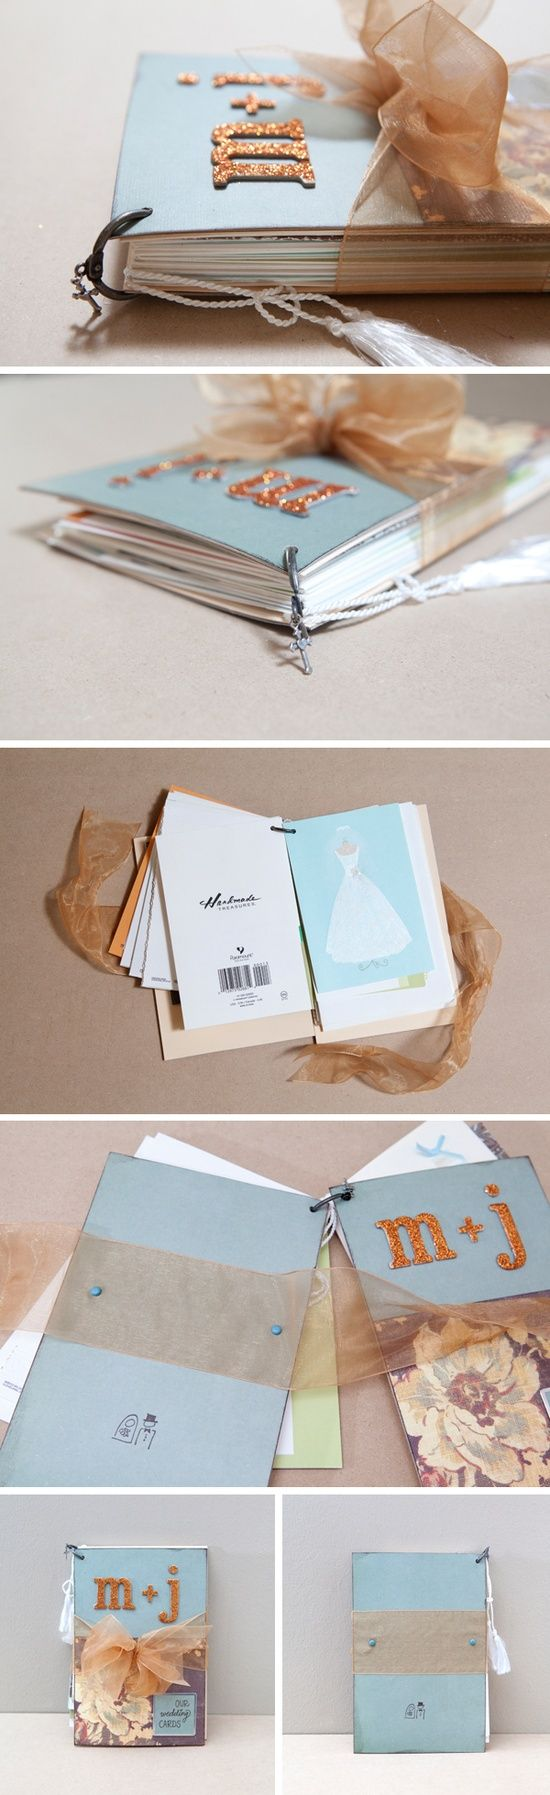 Book with all your wedding cards such a cute idea!